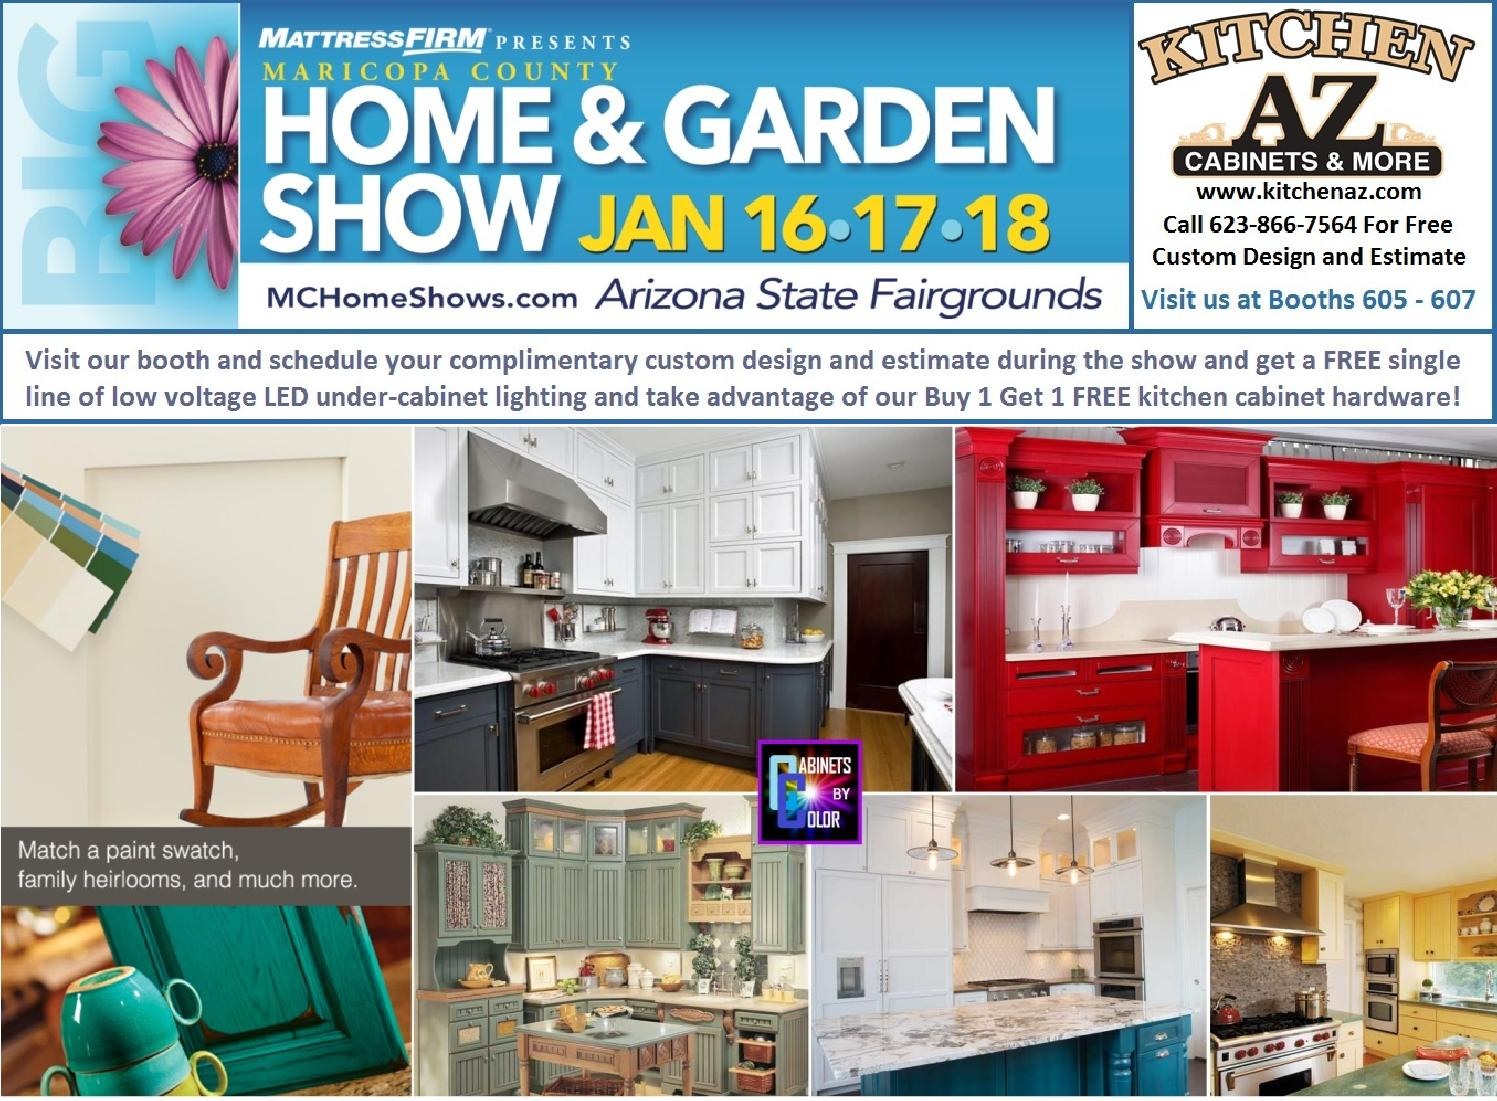 Kitchen Cabinets Phoenix Maricopa County Home Garden Show Jan 2015 By Edwardmugits Issuu